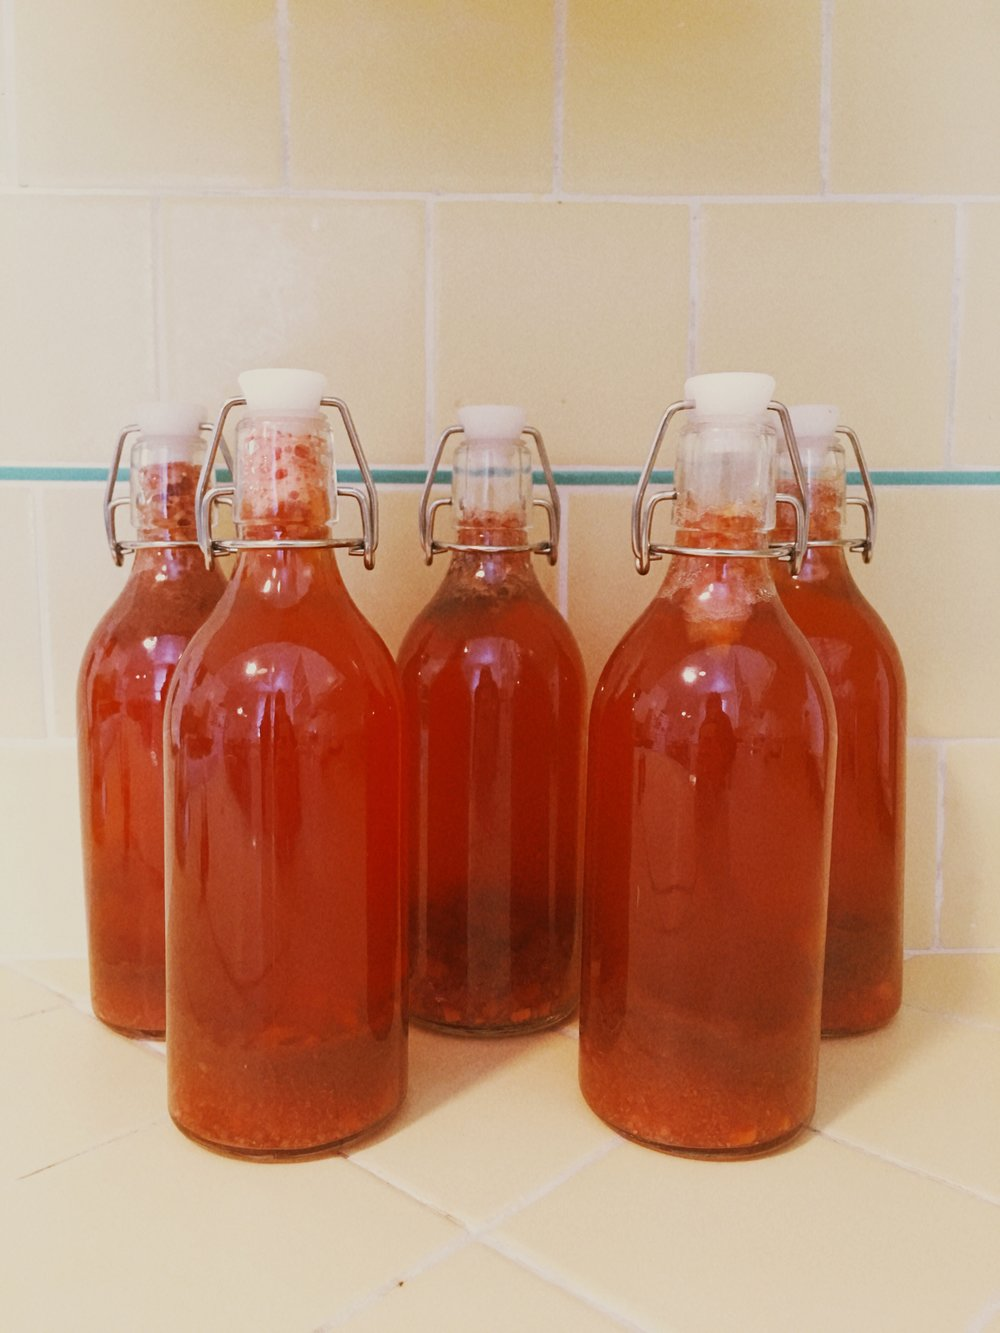 My current brew: strawberry puree with a squeeze of lime and a teaspoon of ginger per bottle.